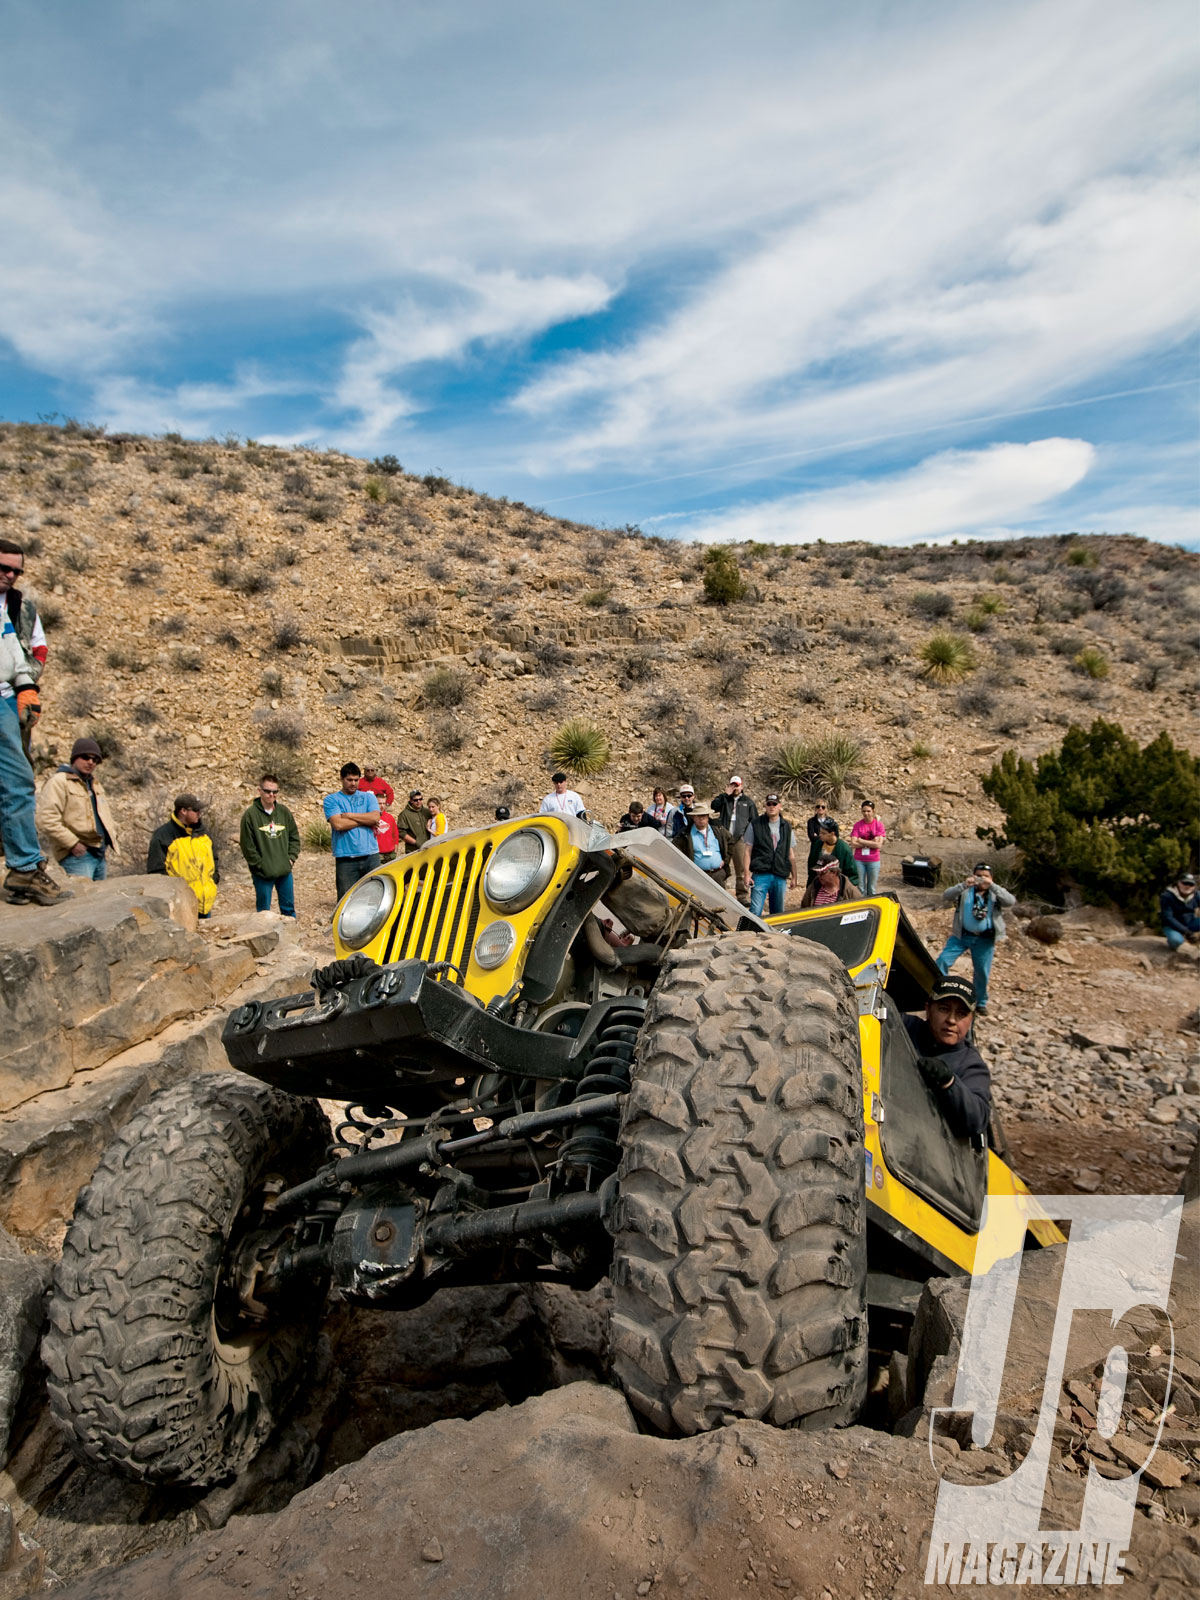 143 1103 09 o+154 1103 chile challenge las cruces new mexico+bailey scrambler front shot